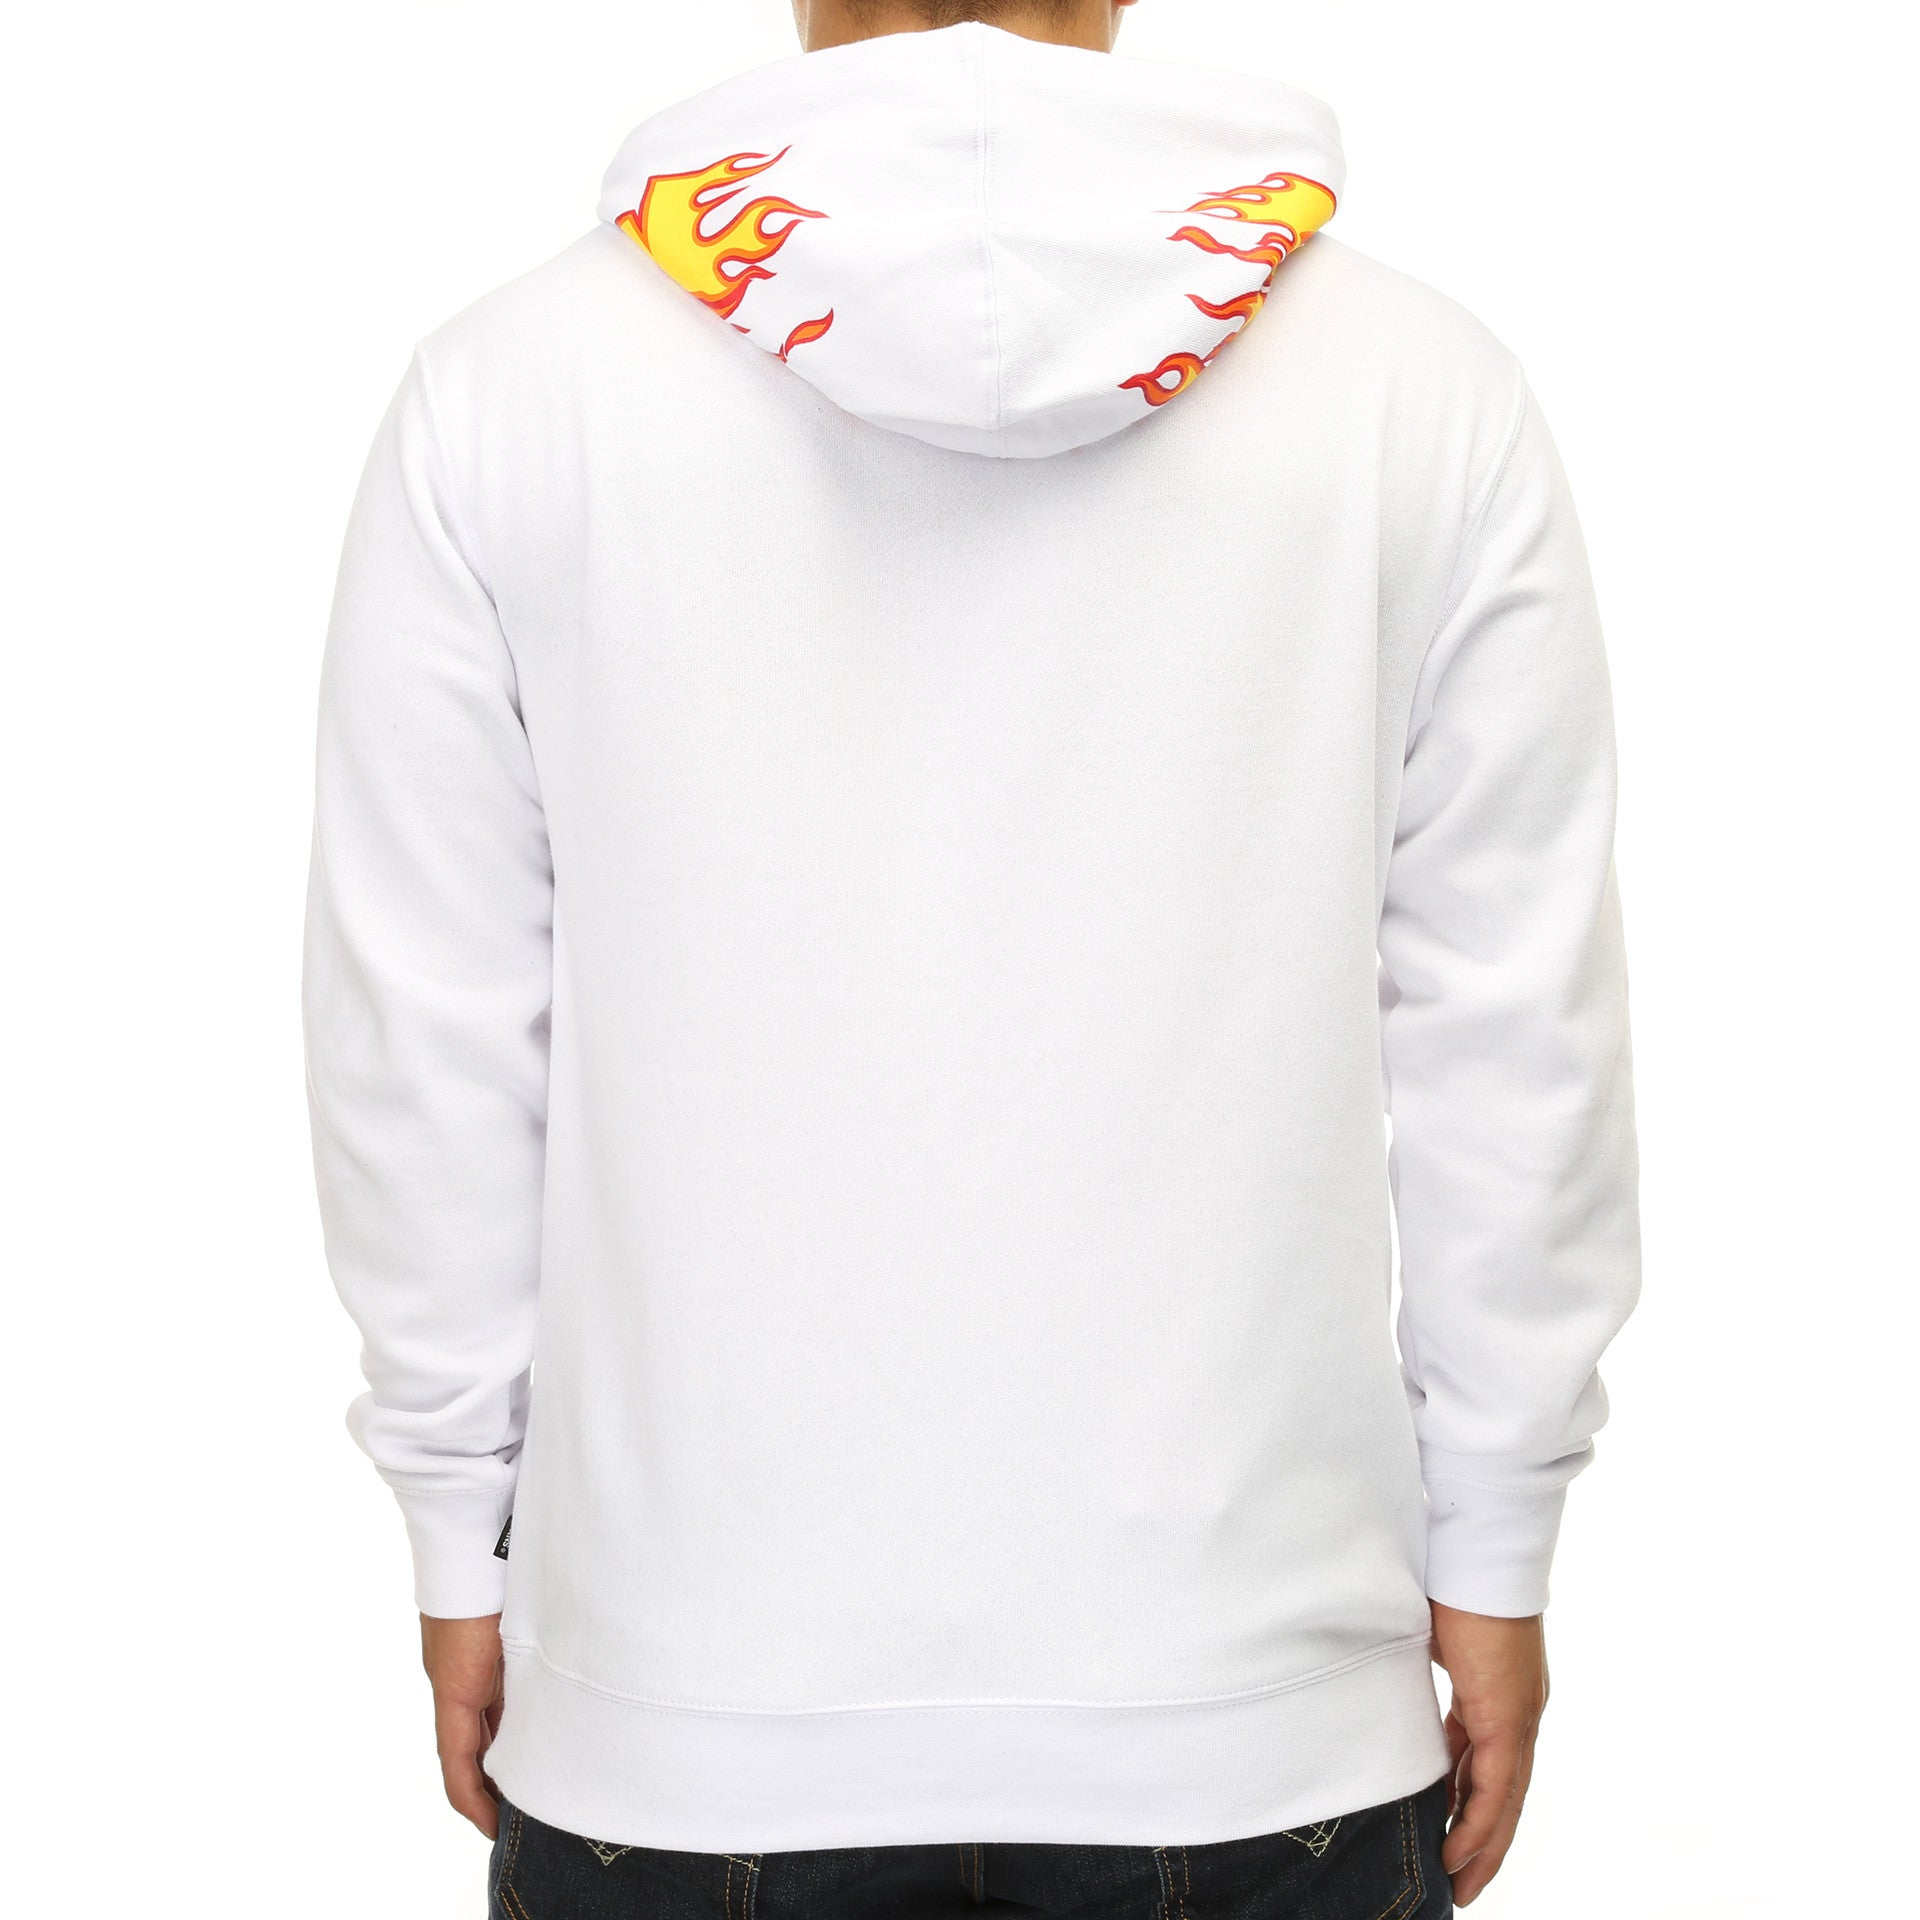 52f5e0283e42 Vans x Thrasher Pullover - White - New Star